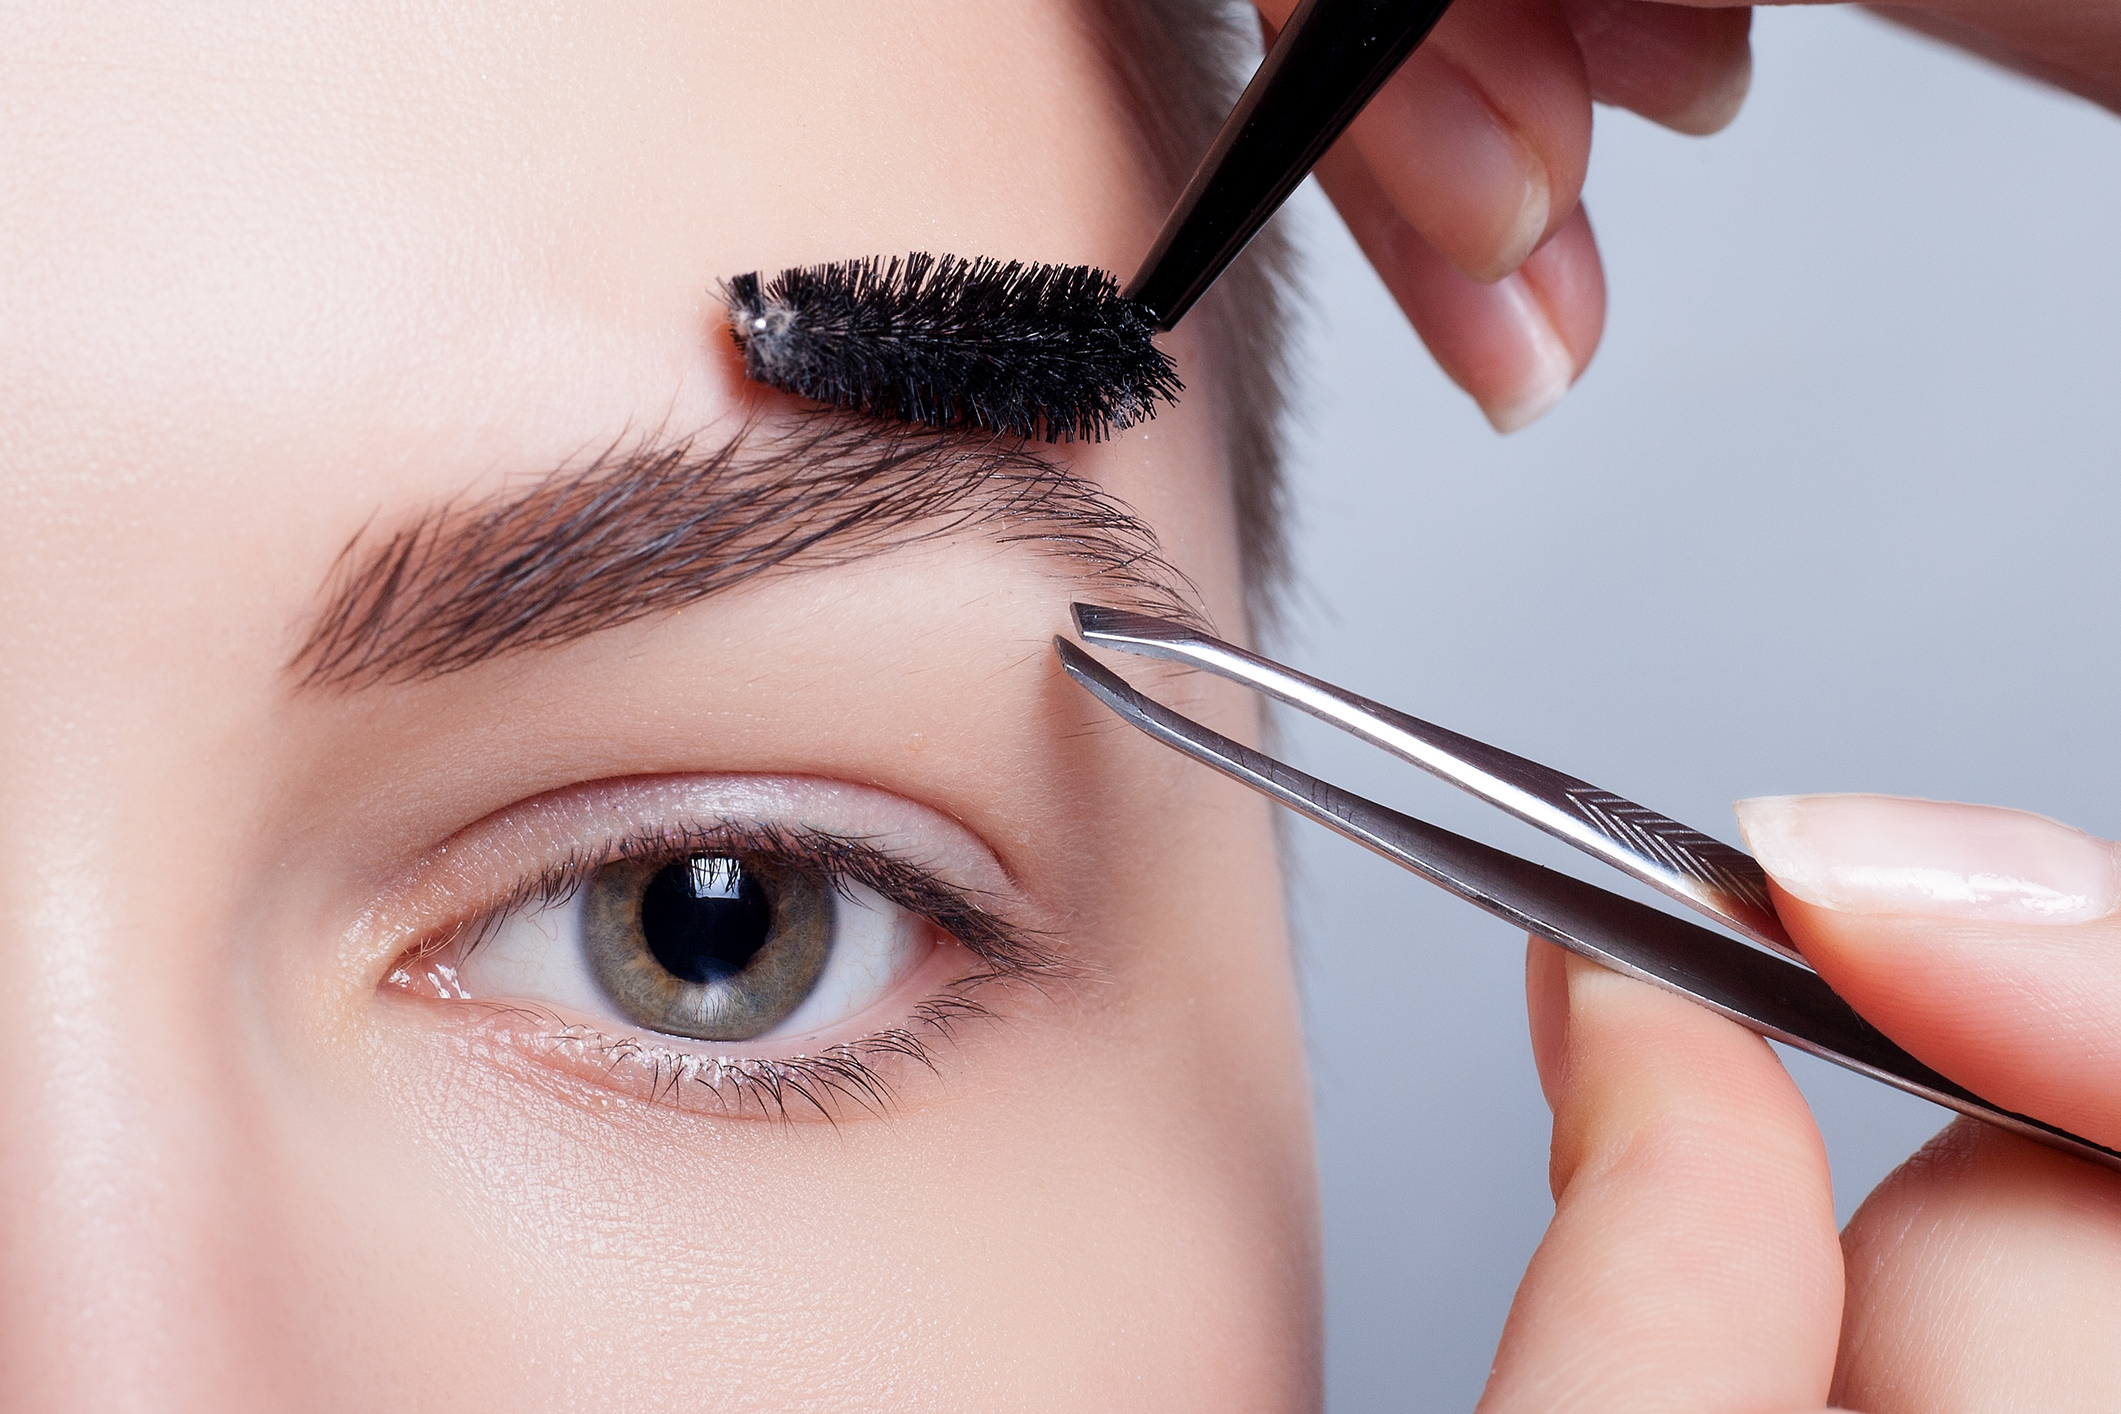 Beautiful eyebrows - is a constant work on them